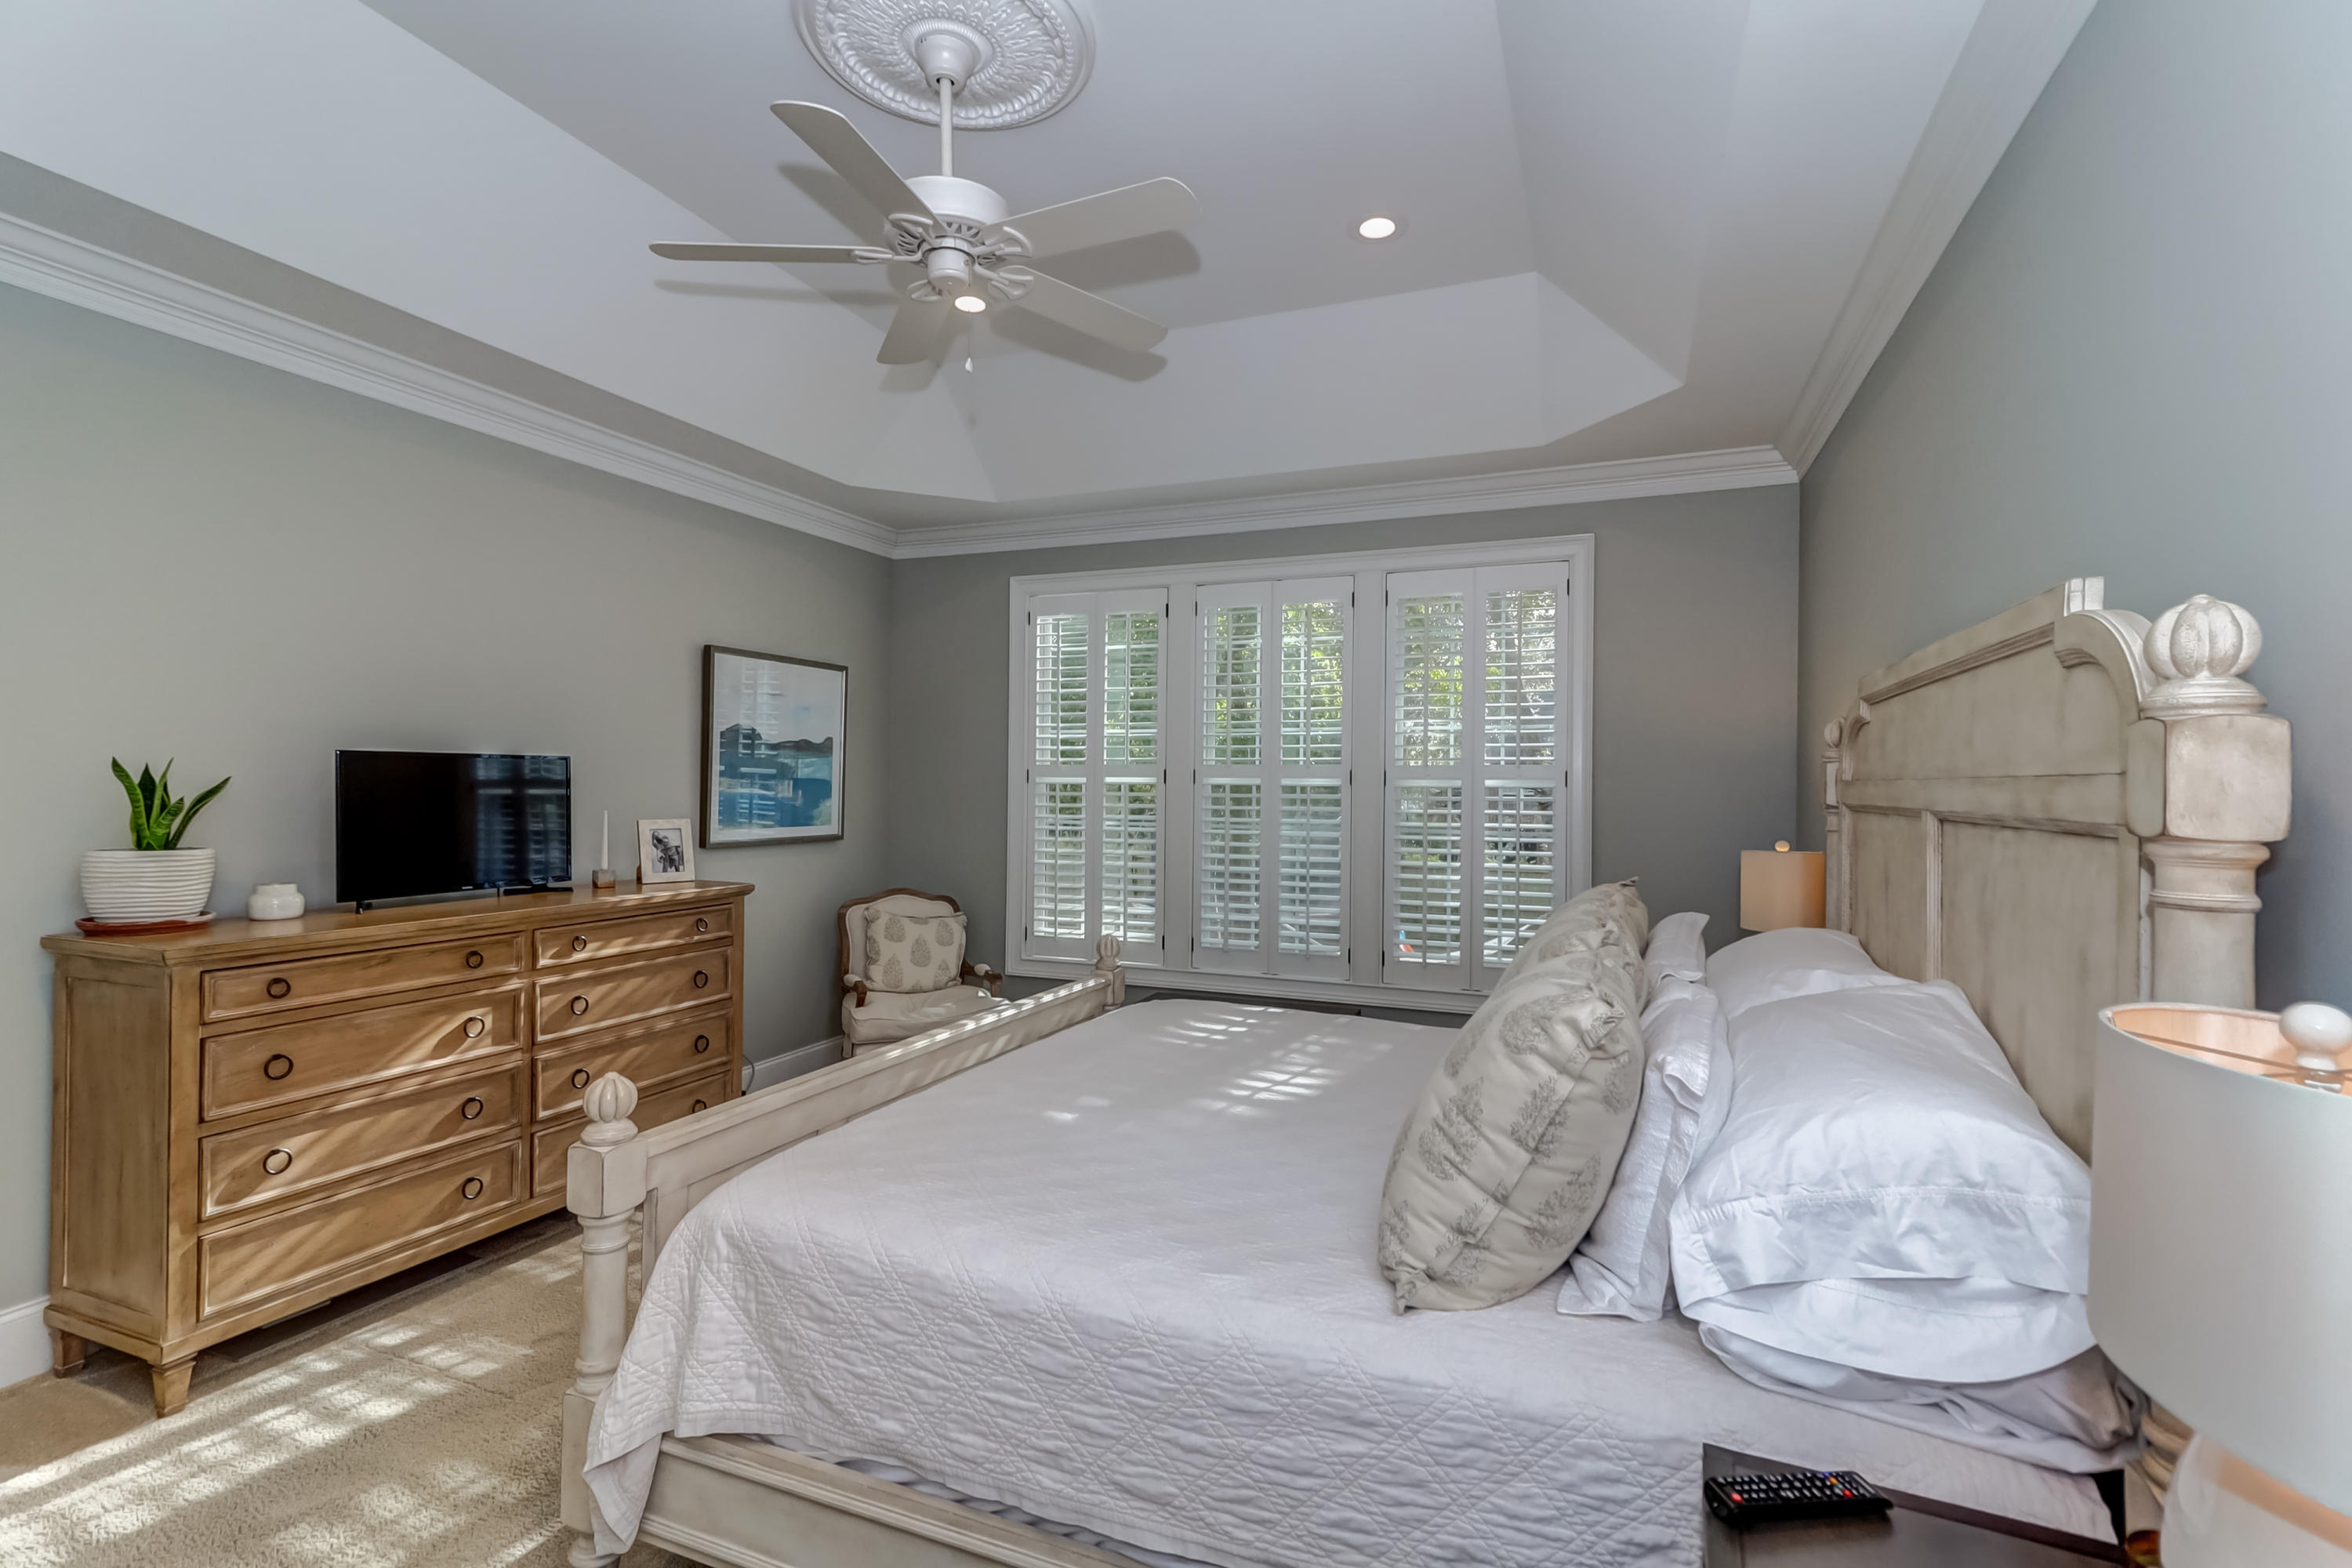 Woodward Pointe Homes For Sale - 657 White Chapel, Charleston, SC - 13